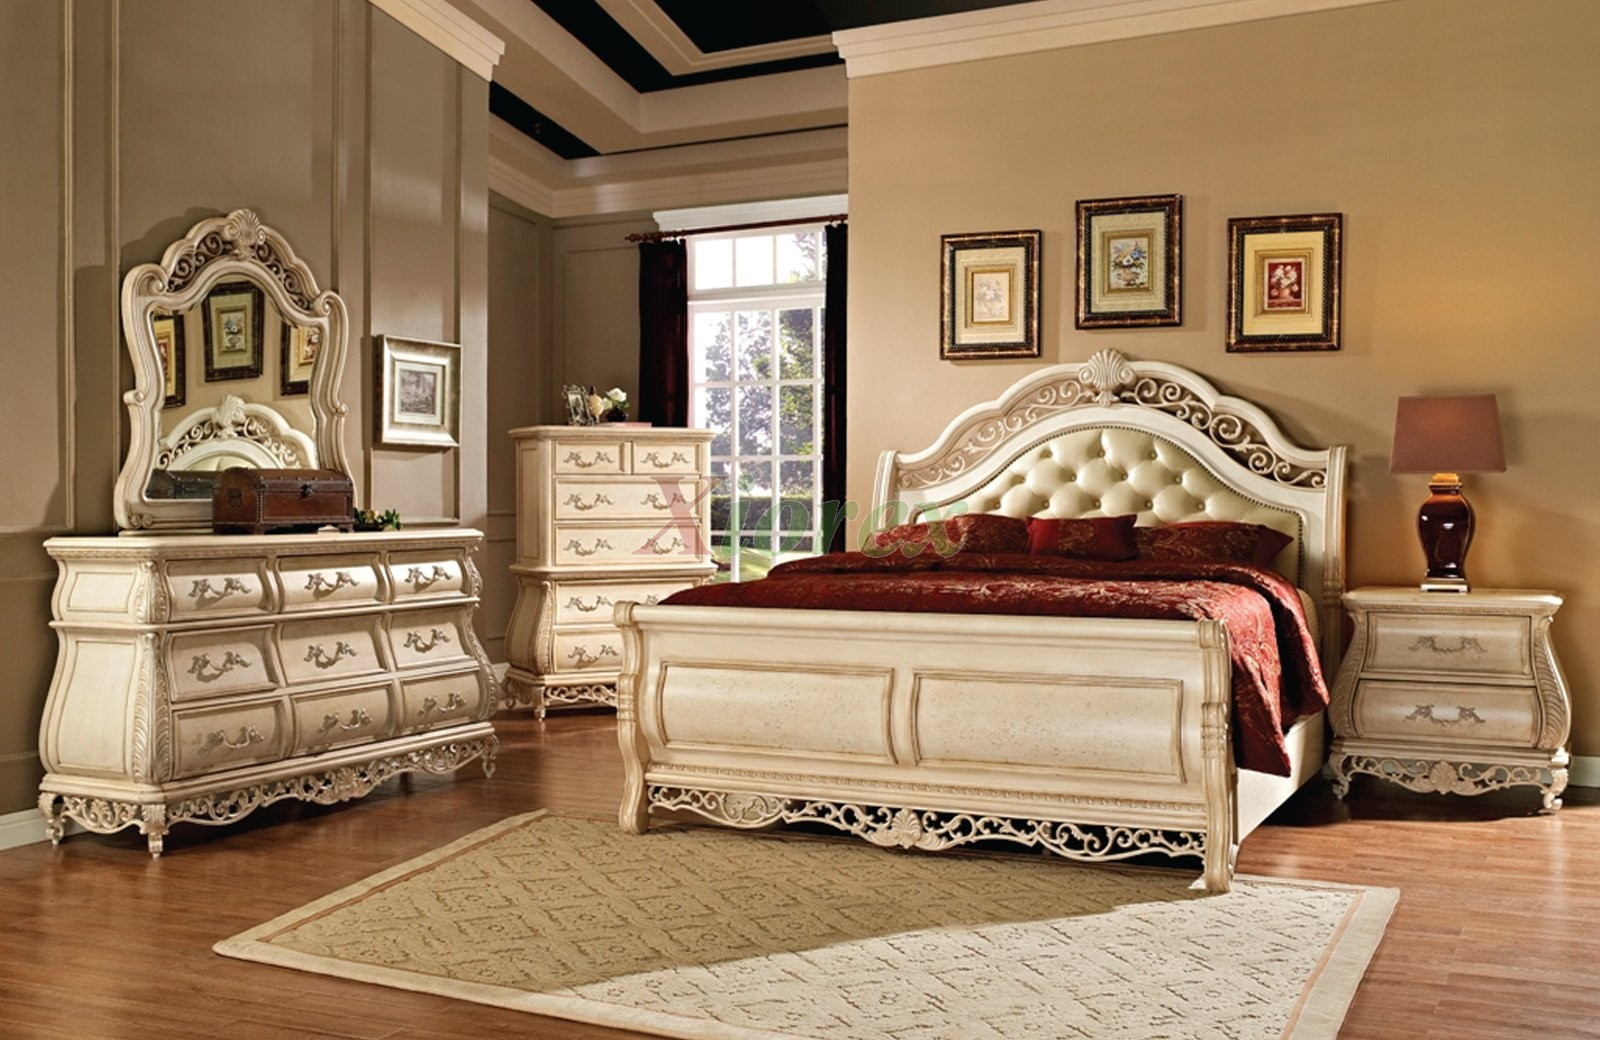 Sleigh Bedroom Furniture Set with Leather Headboard 142 | Xiorex